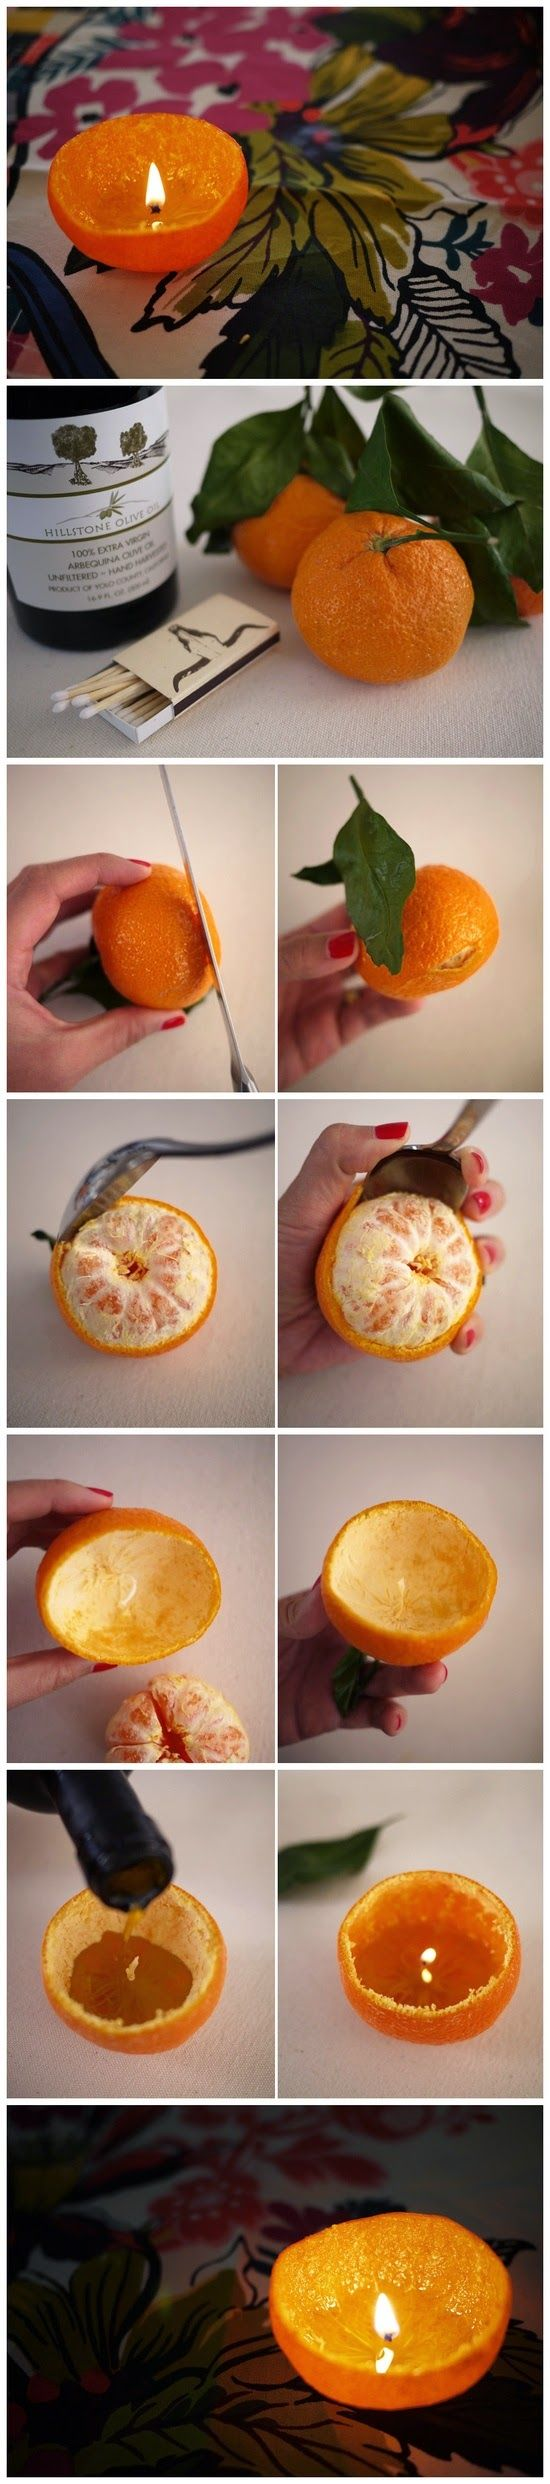 DIY : How To Make a Clementine Light - My Favorite Things